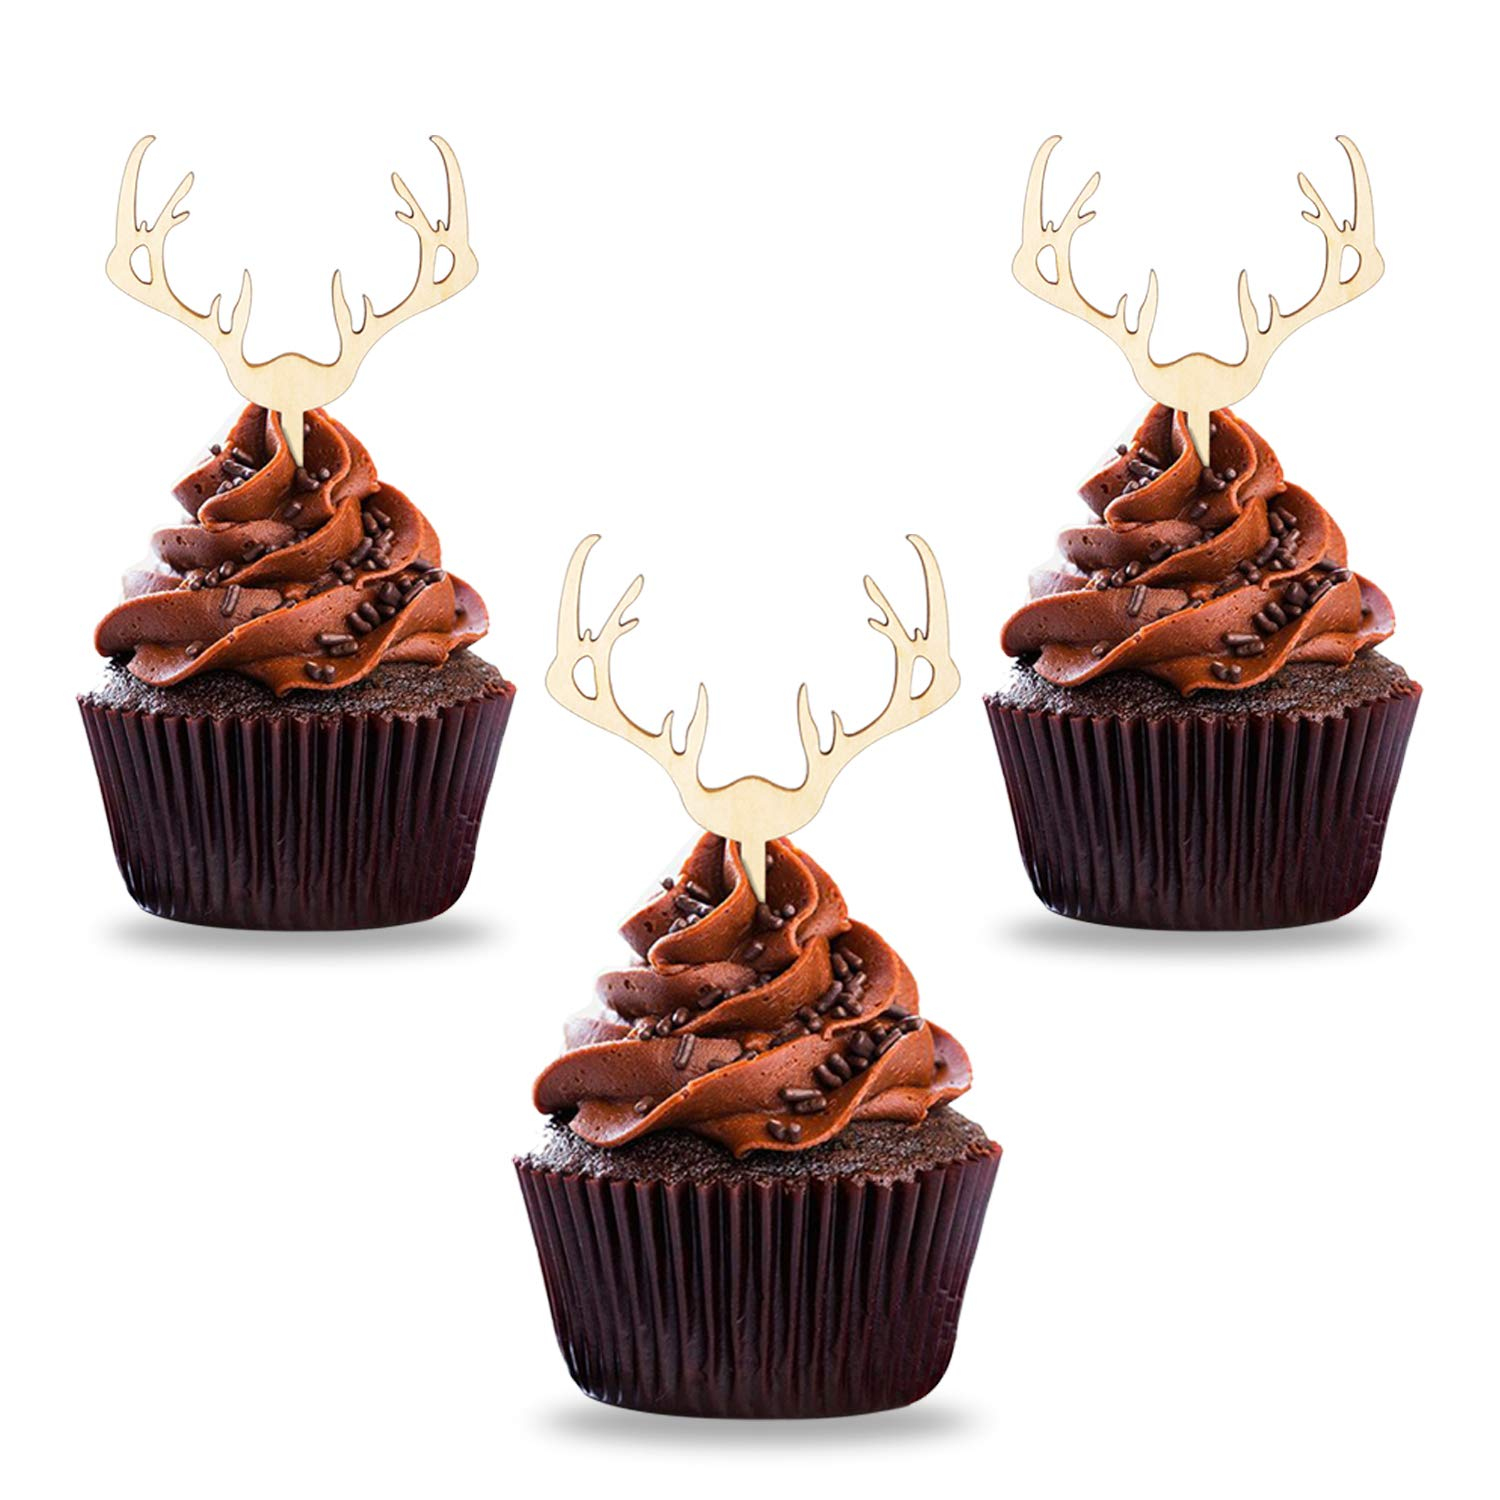 Antler Cupcake Toppers Wooden Deer Cake Picks Decorations Baby Shower Wedding Hunting Boho Rustic Country Birthday Theme Party Supplies Qty 24